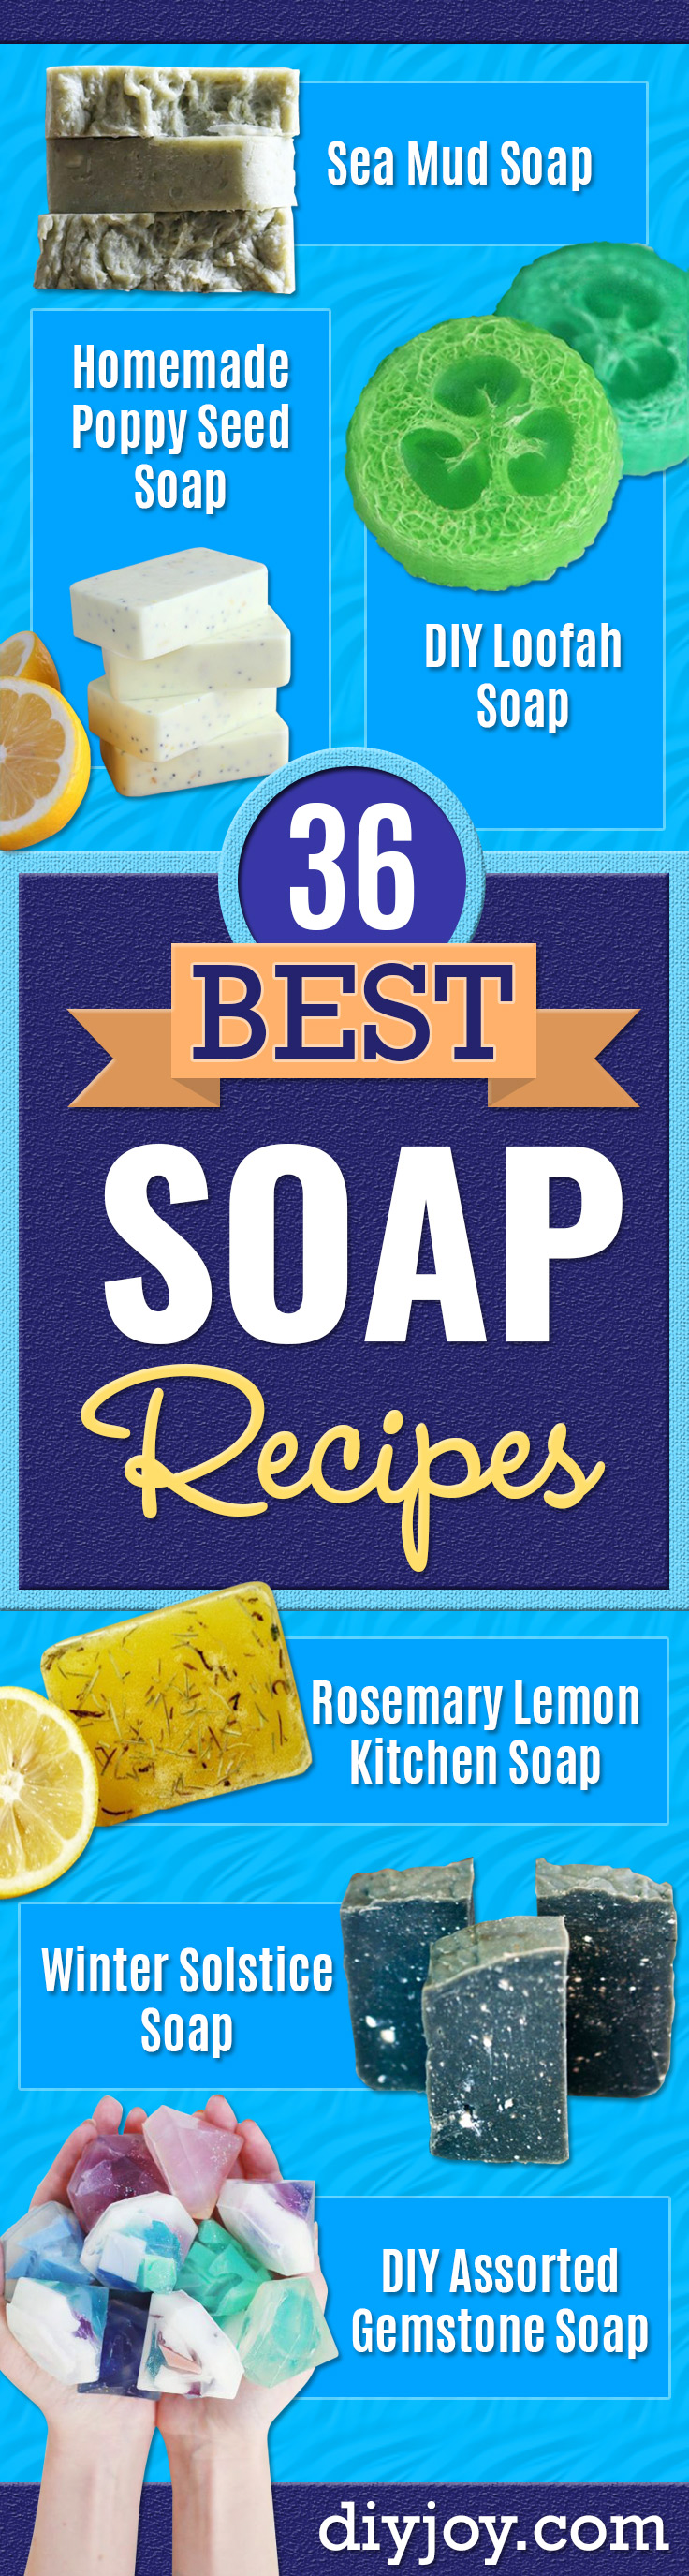 DIY Soap Recipes - Melt and Pour, Homemade Recipe Without Lye - Natural Soap crafts for Kids - Shea Butter, Essential Oils, Easy Ides With 3 Ingredients - Pretty and Creative Soap Tutorials With Step by Step Instructions for Handmade Soap Making - Cool Stuff To Make and Sell On Etsy http://diyjoy.com/diy-soap-recipes